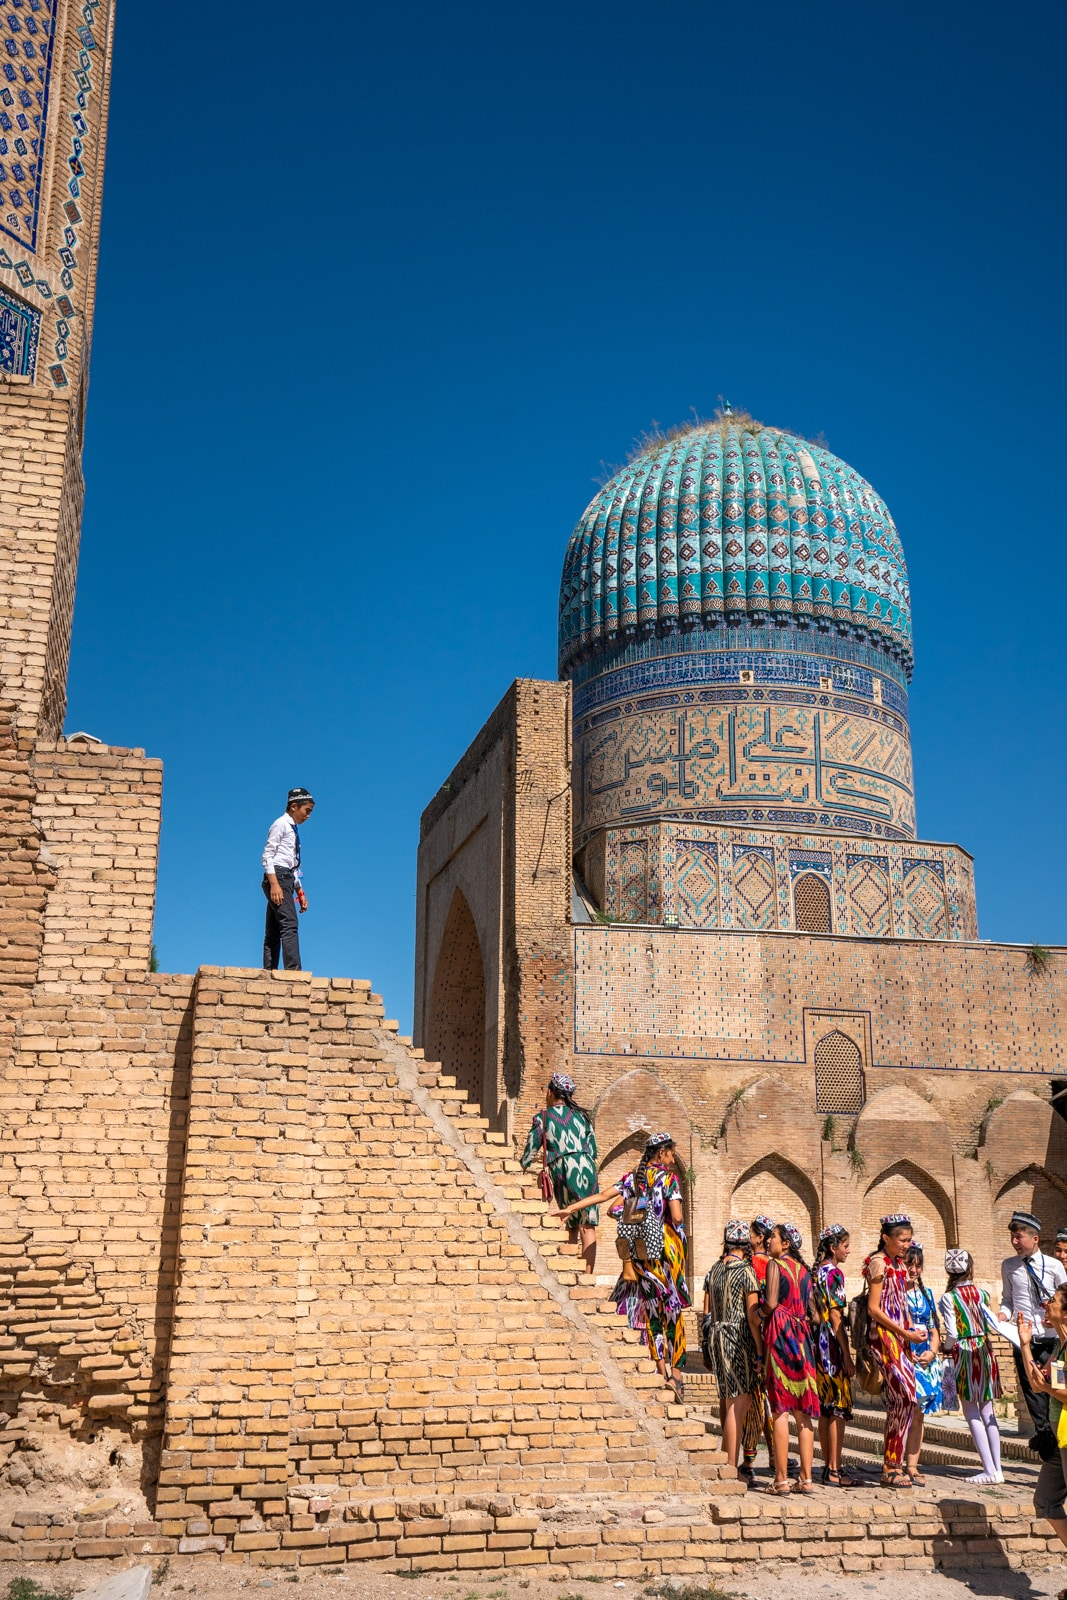 School children climbing on the Bibi Khanum mosque in Samarkand, Uzbekistan